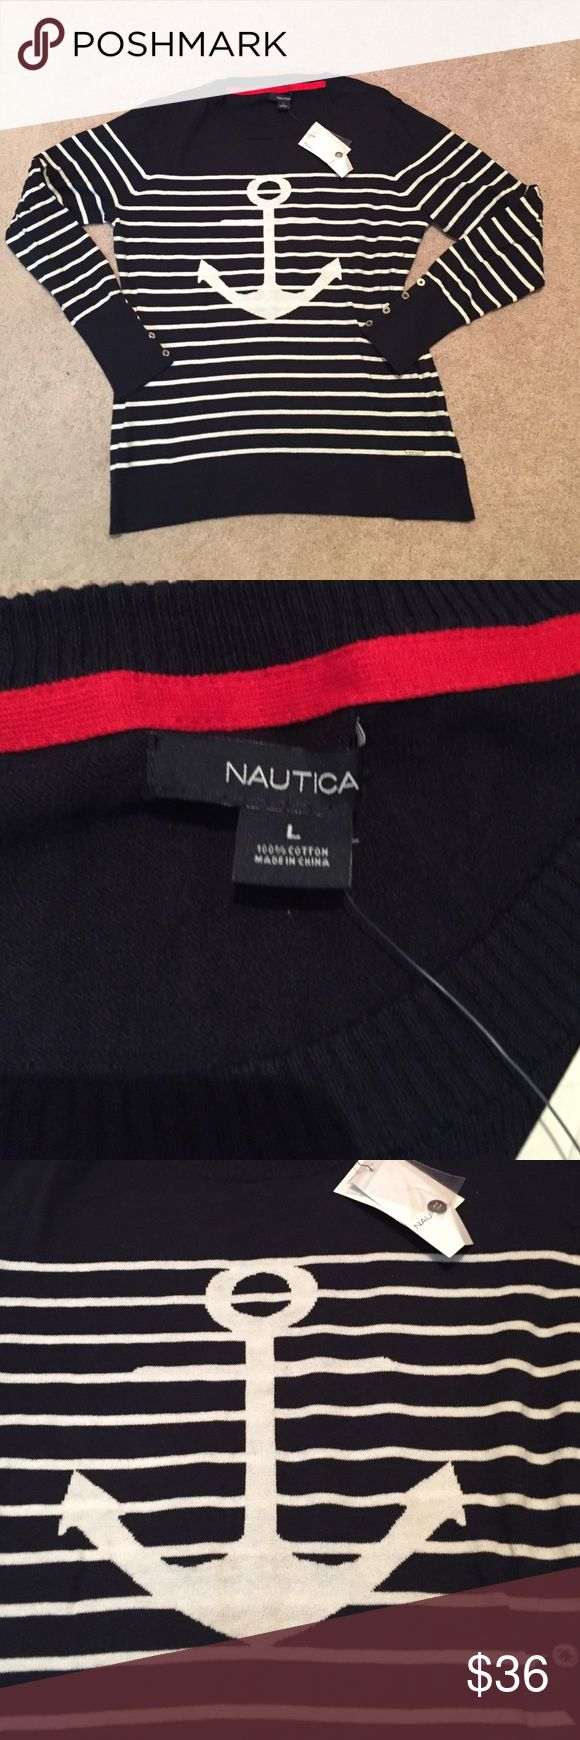 NWT nautica striped anchor sweater New with tags Nautica size large striped anchor sweater Nautica Sweaters